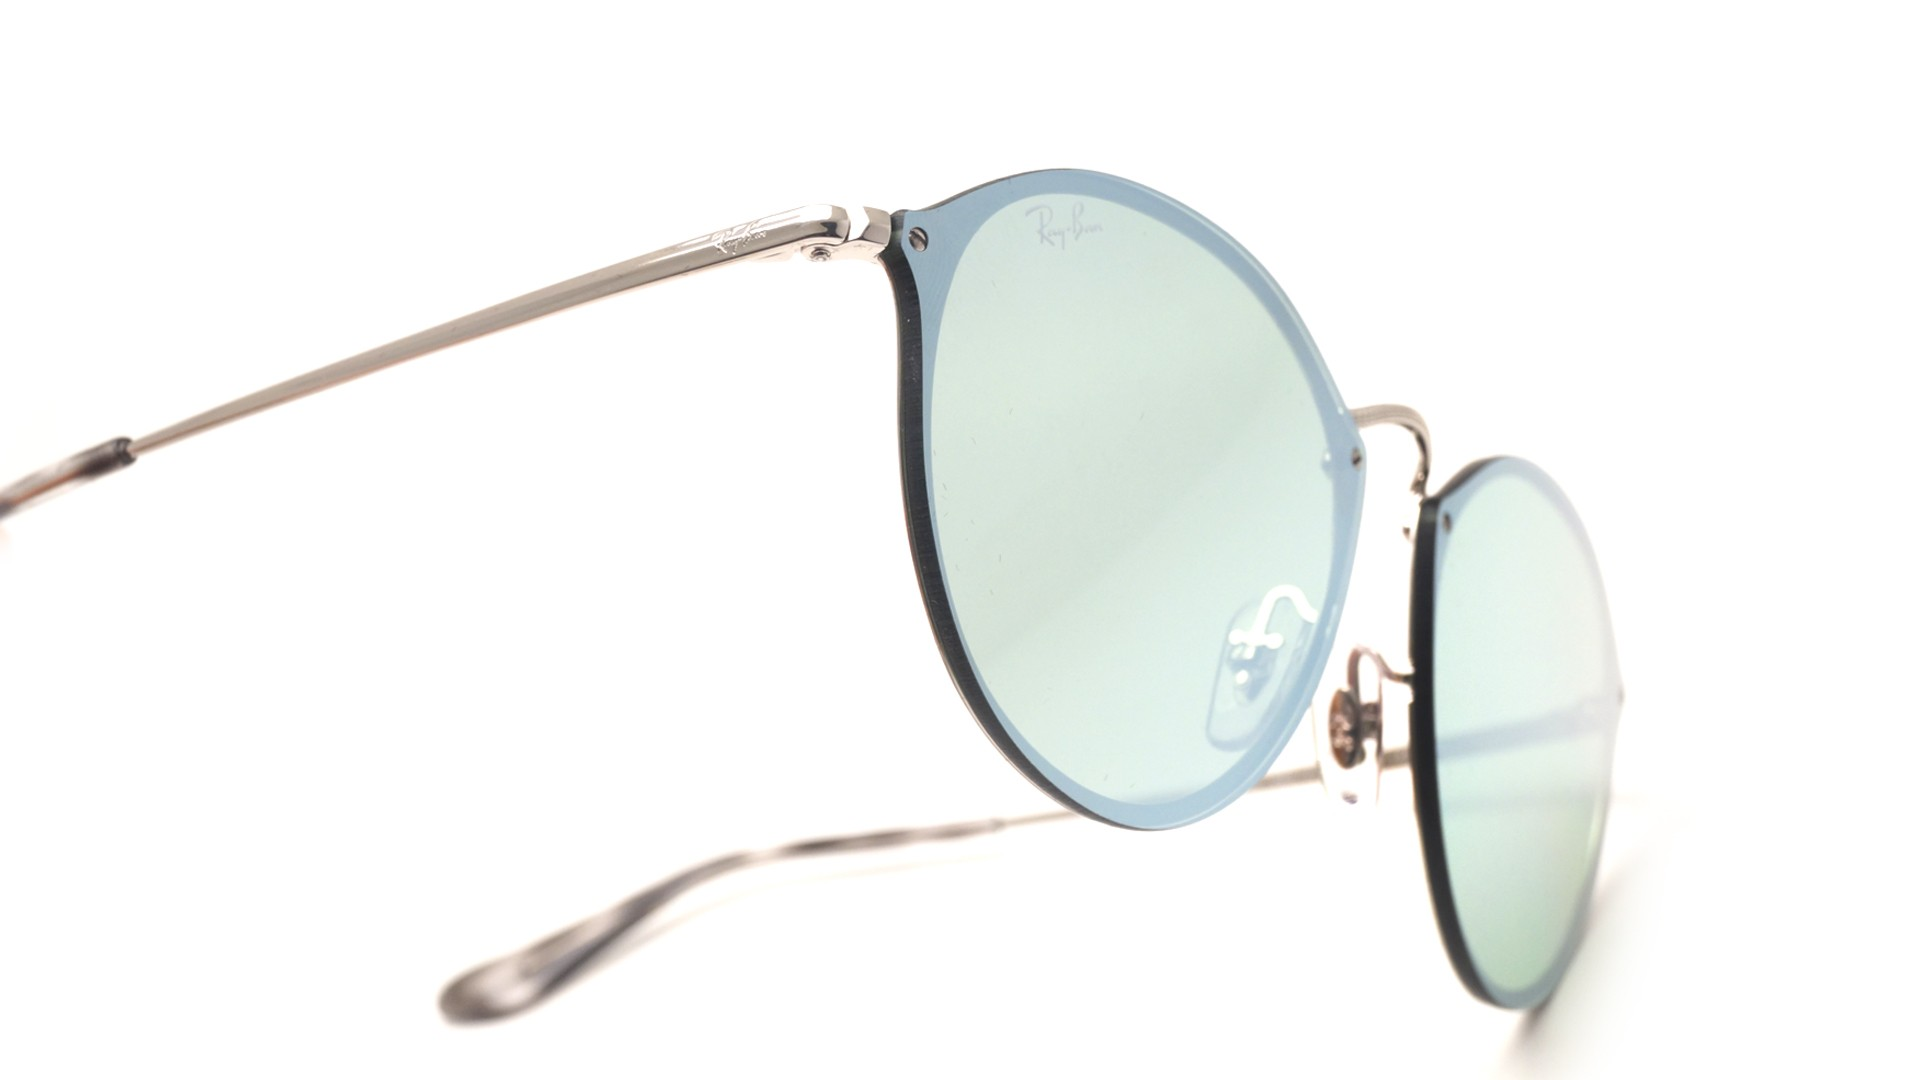 Sunglasses Ray-Ban Round Blaze Silver RB3574N 003 30 59-14 Large Mirror b3154be182